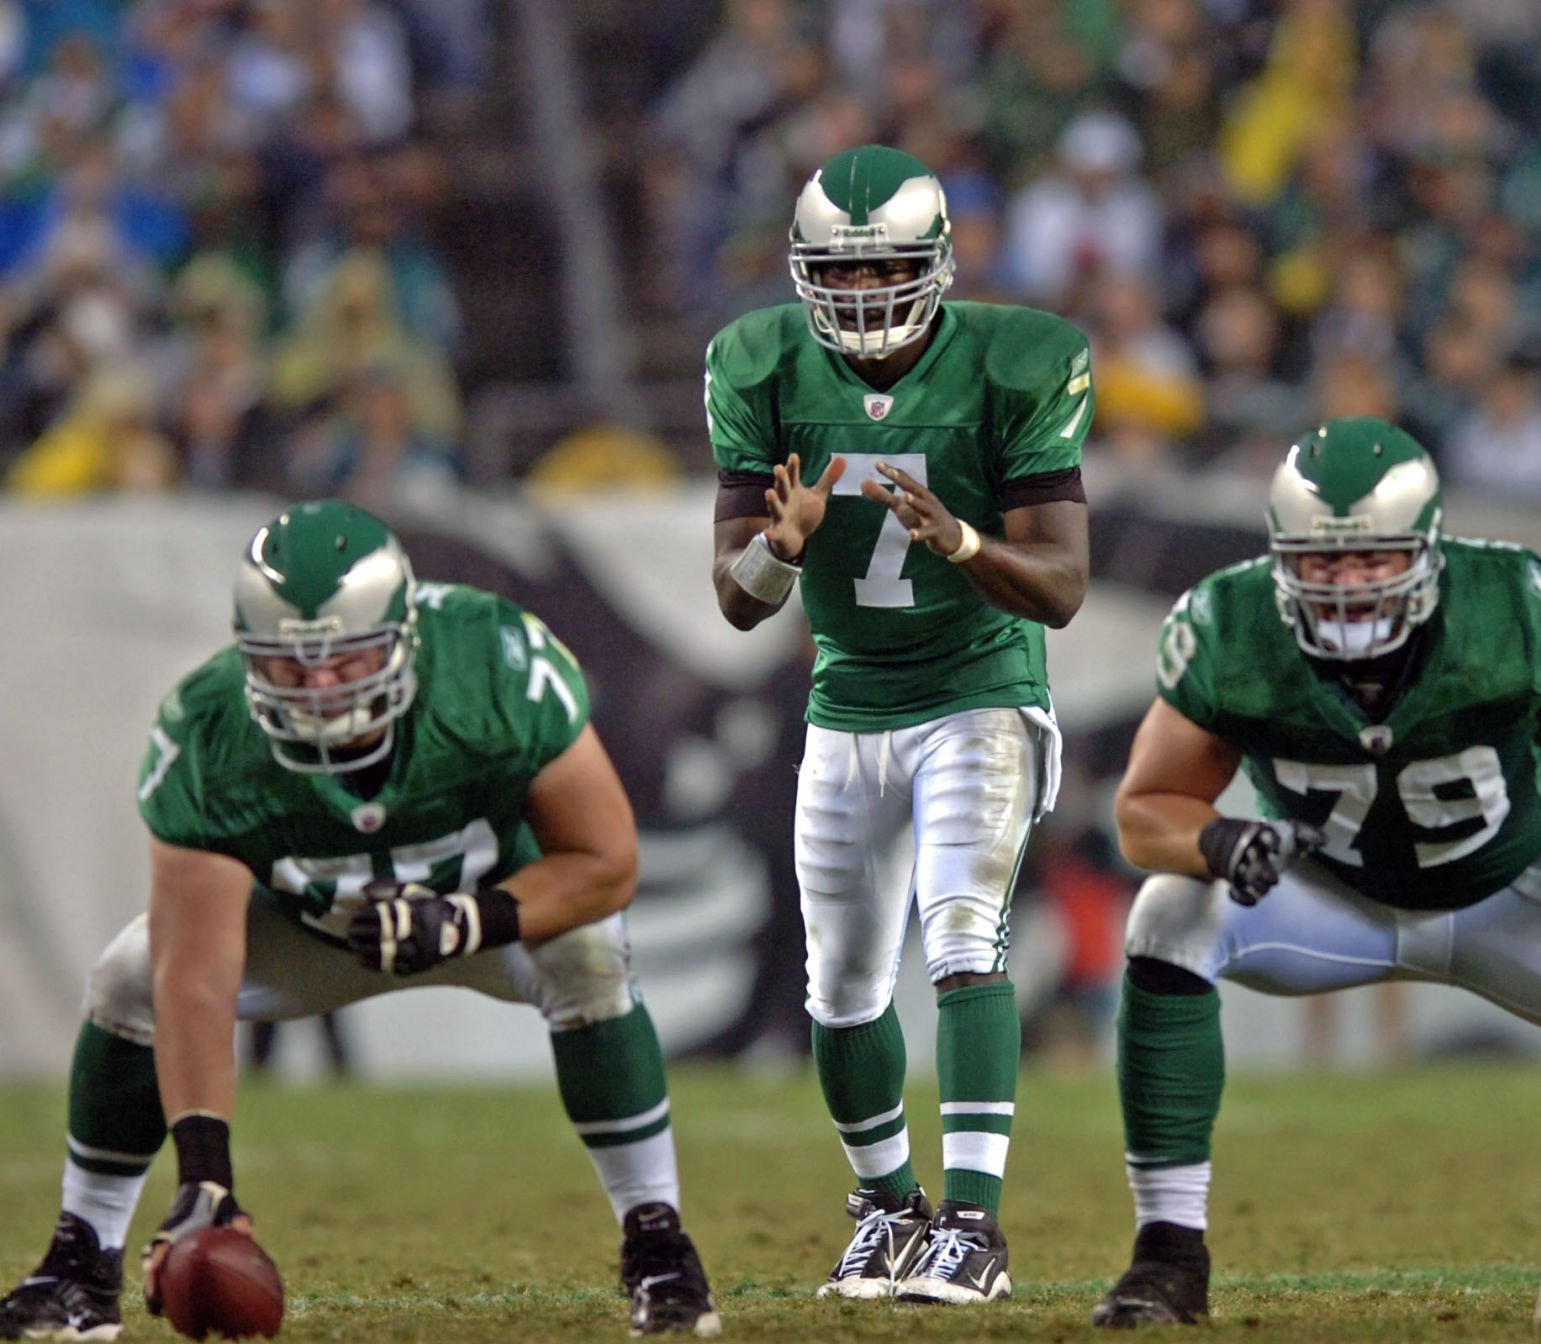 Eagles owner Jeffrey Lurie wants his team to wear Kelly green | NFL